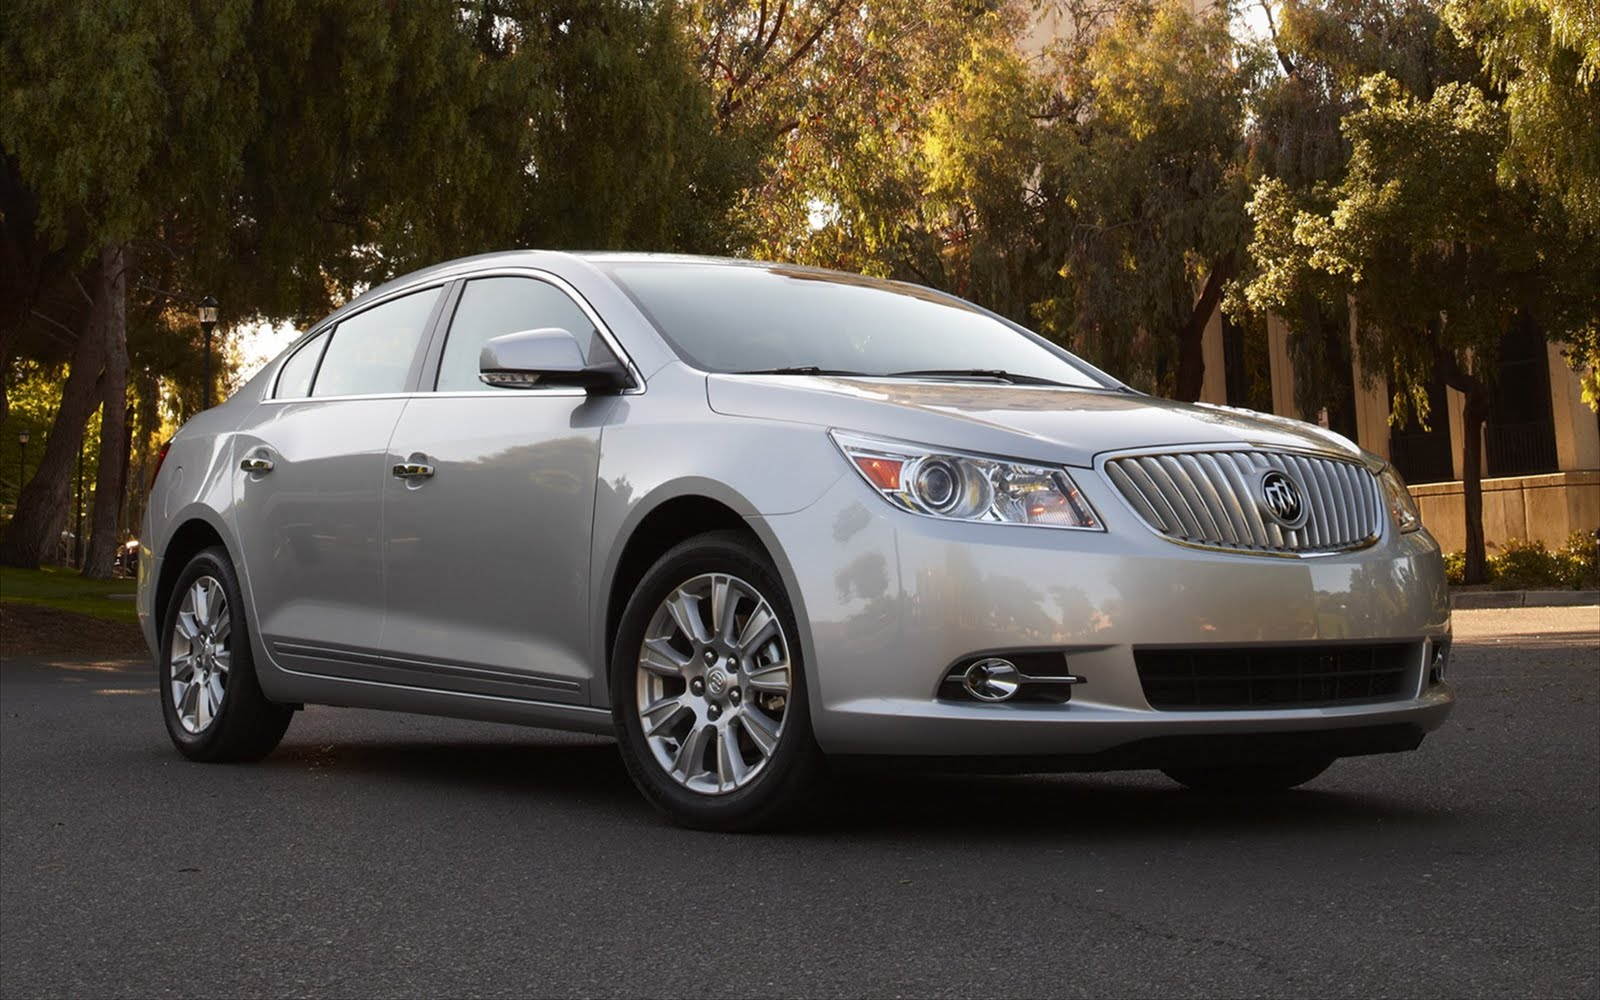 buick lacrosse 2012 review and spec car wallpaper car pictures. Black Bedroom Furniture Sets. Home Design Ideas